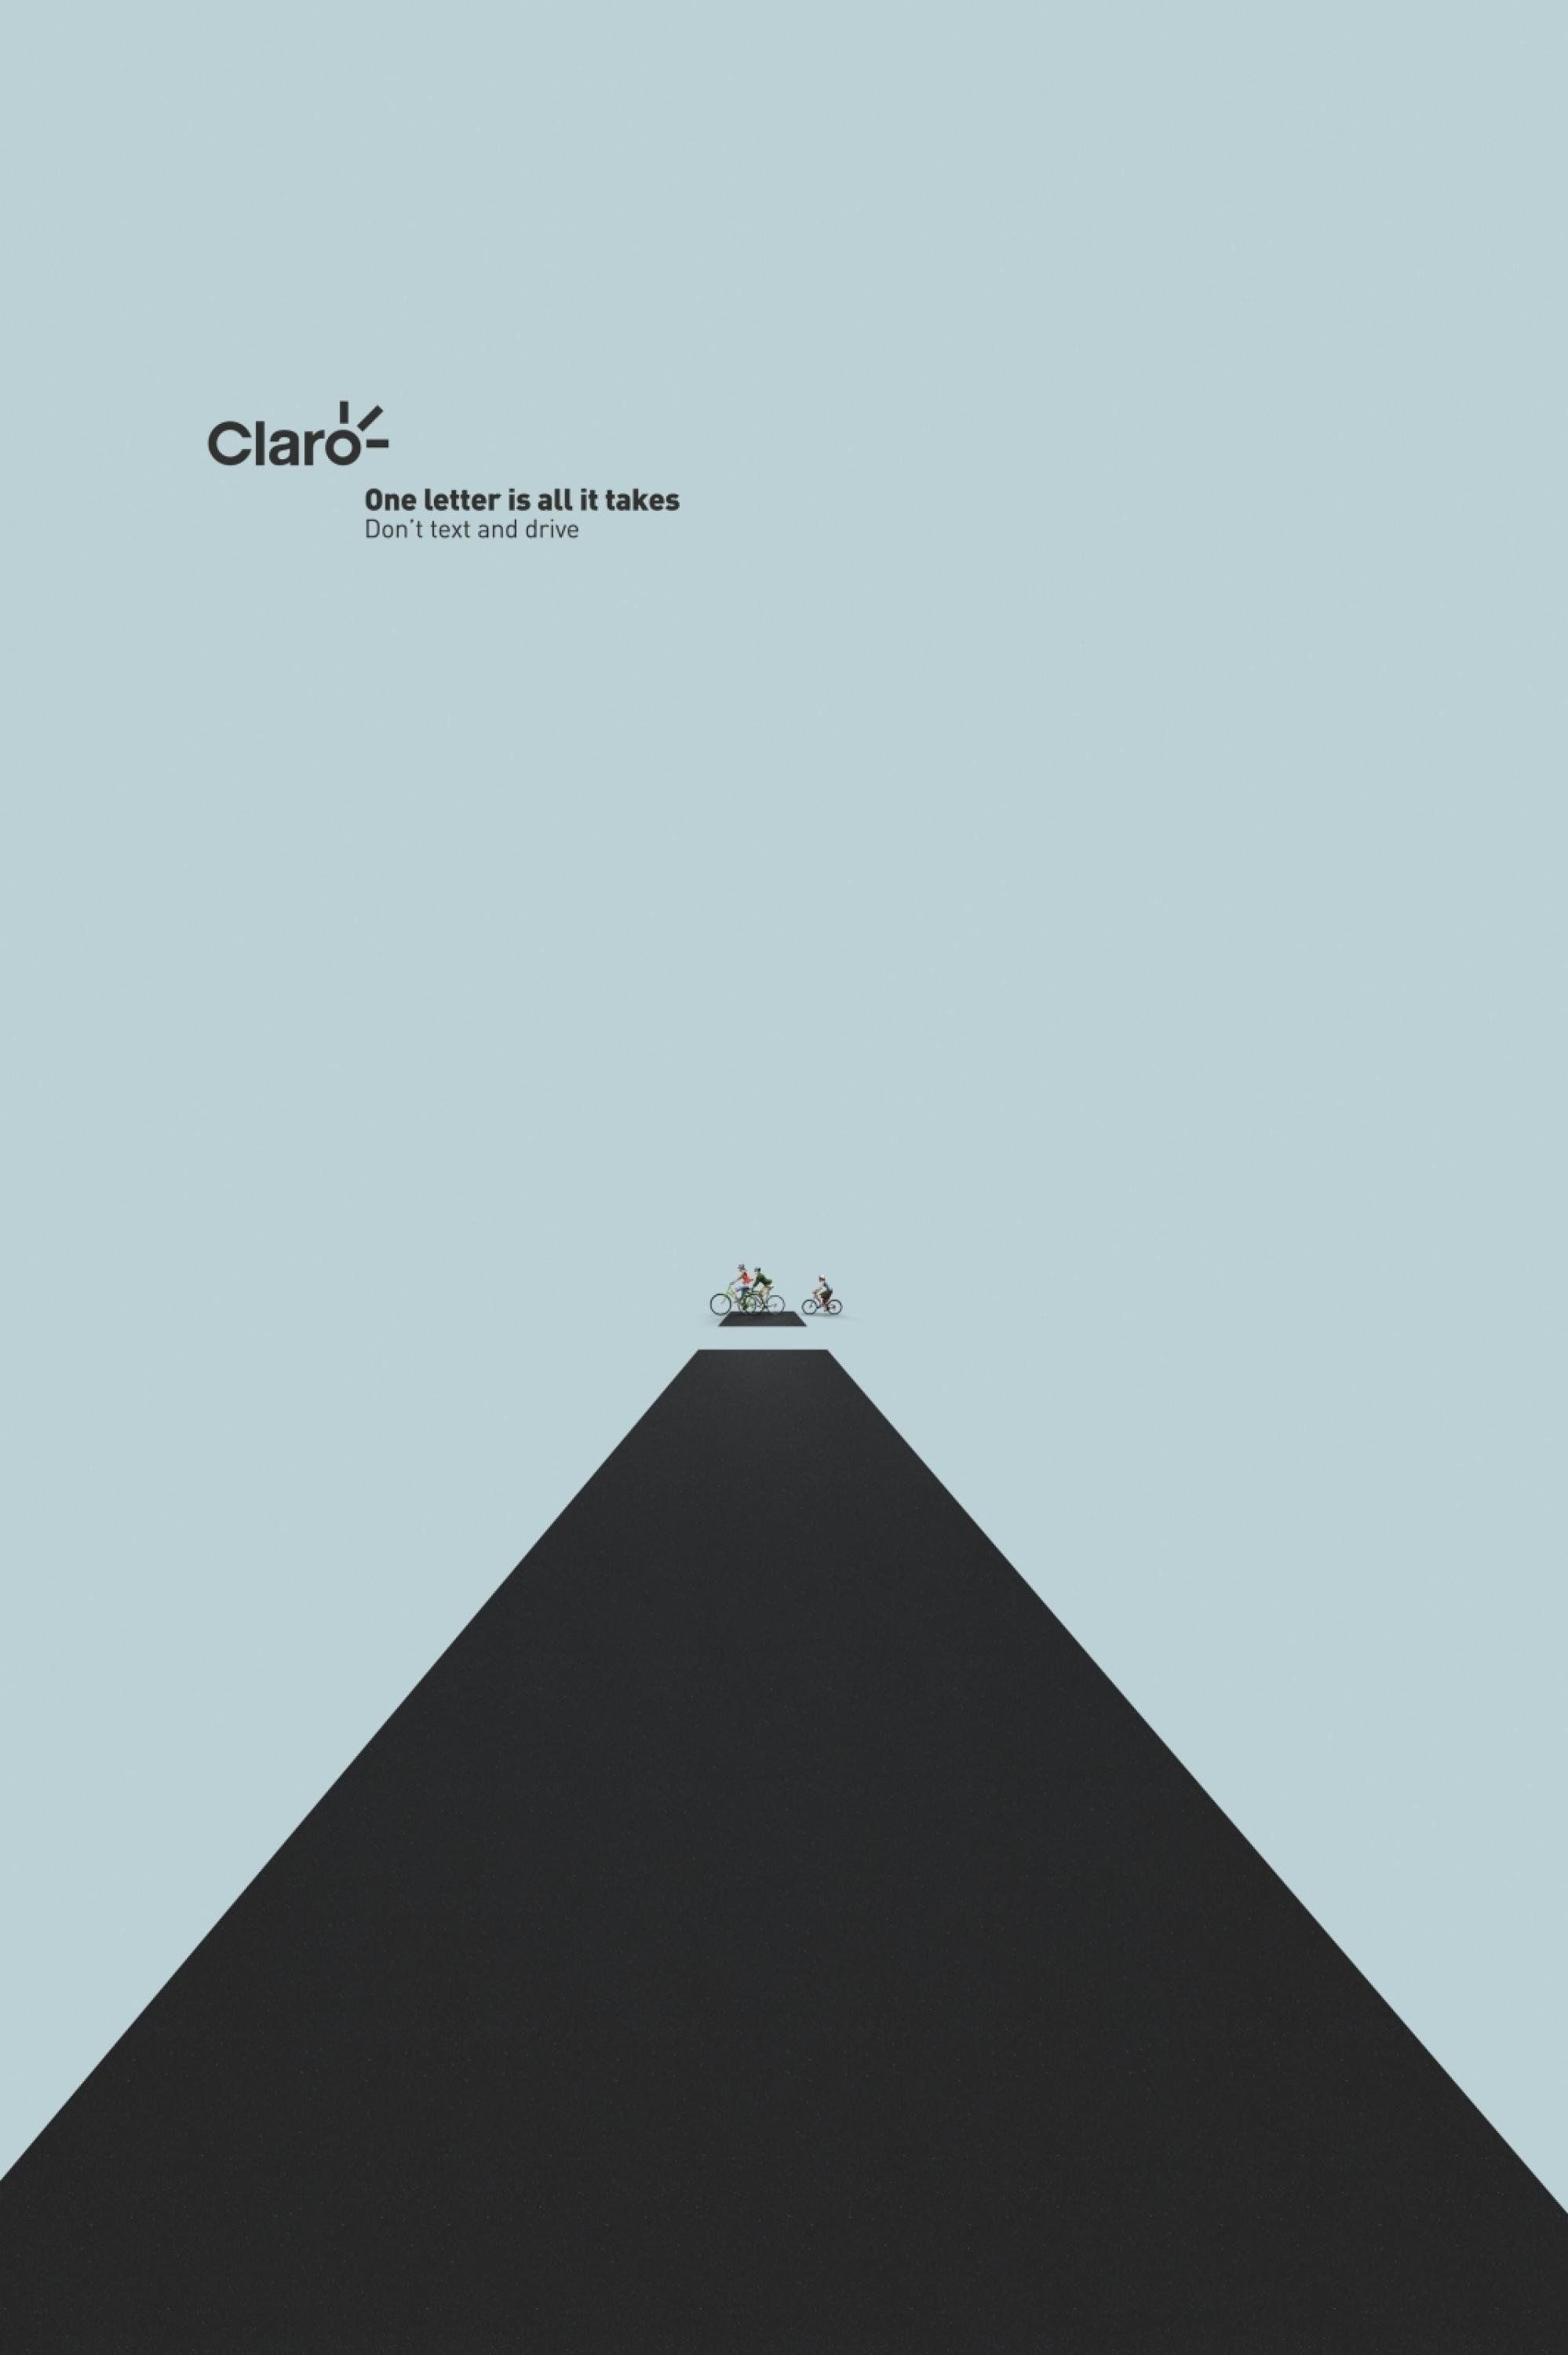 Claro I Print Ad What the letter